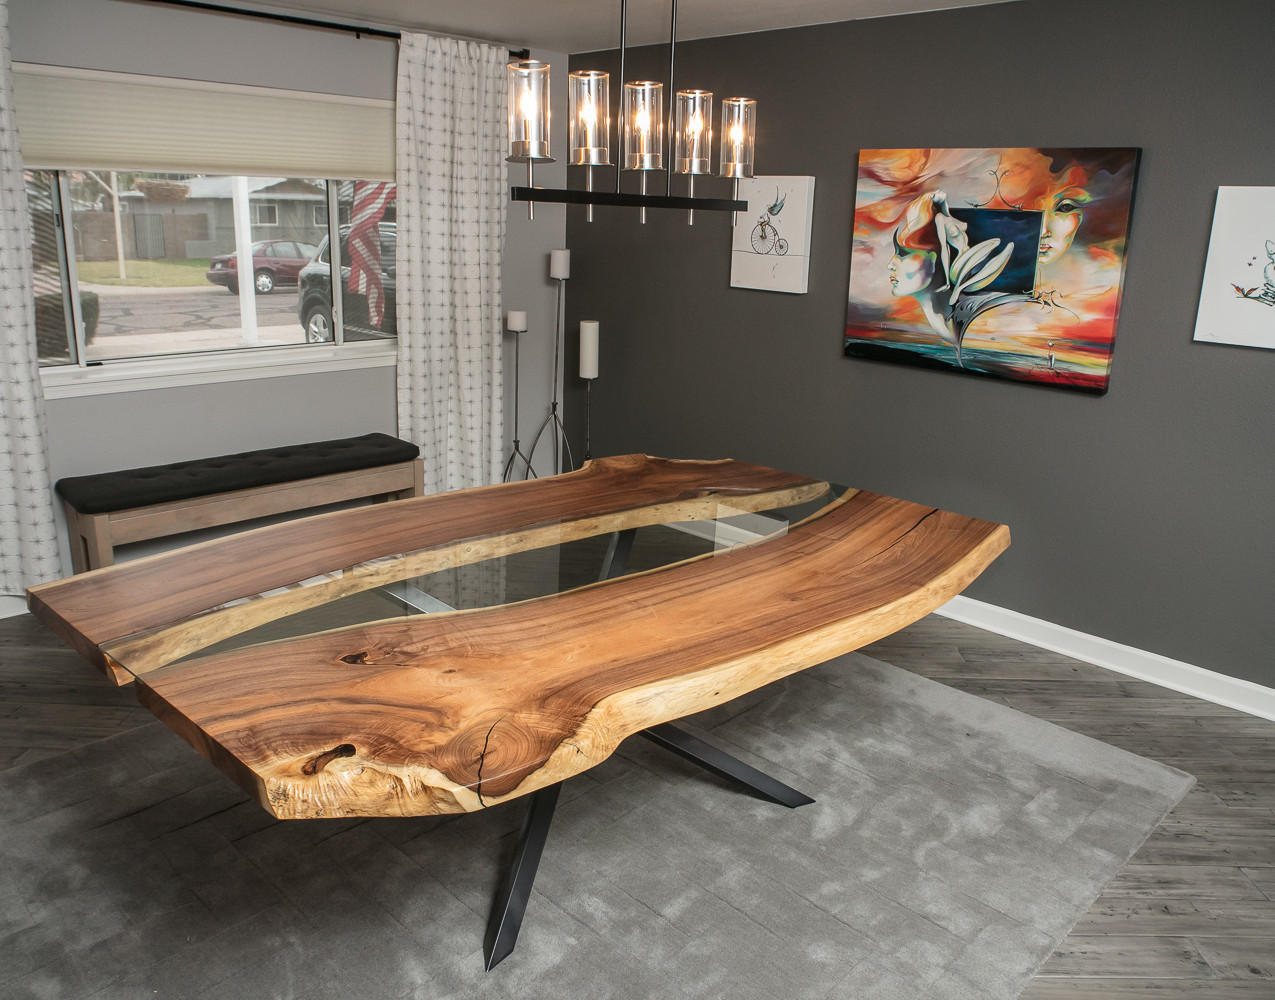 Double Live Edge bookmatched reclaimed mesquite dining table with glass inlay on modern X base